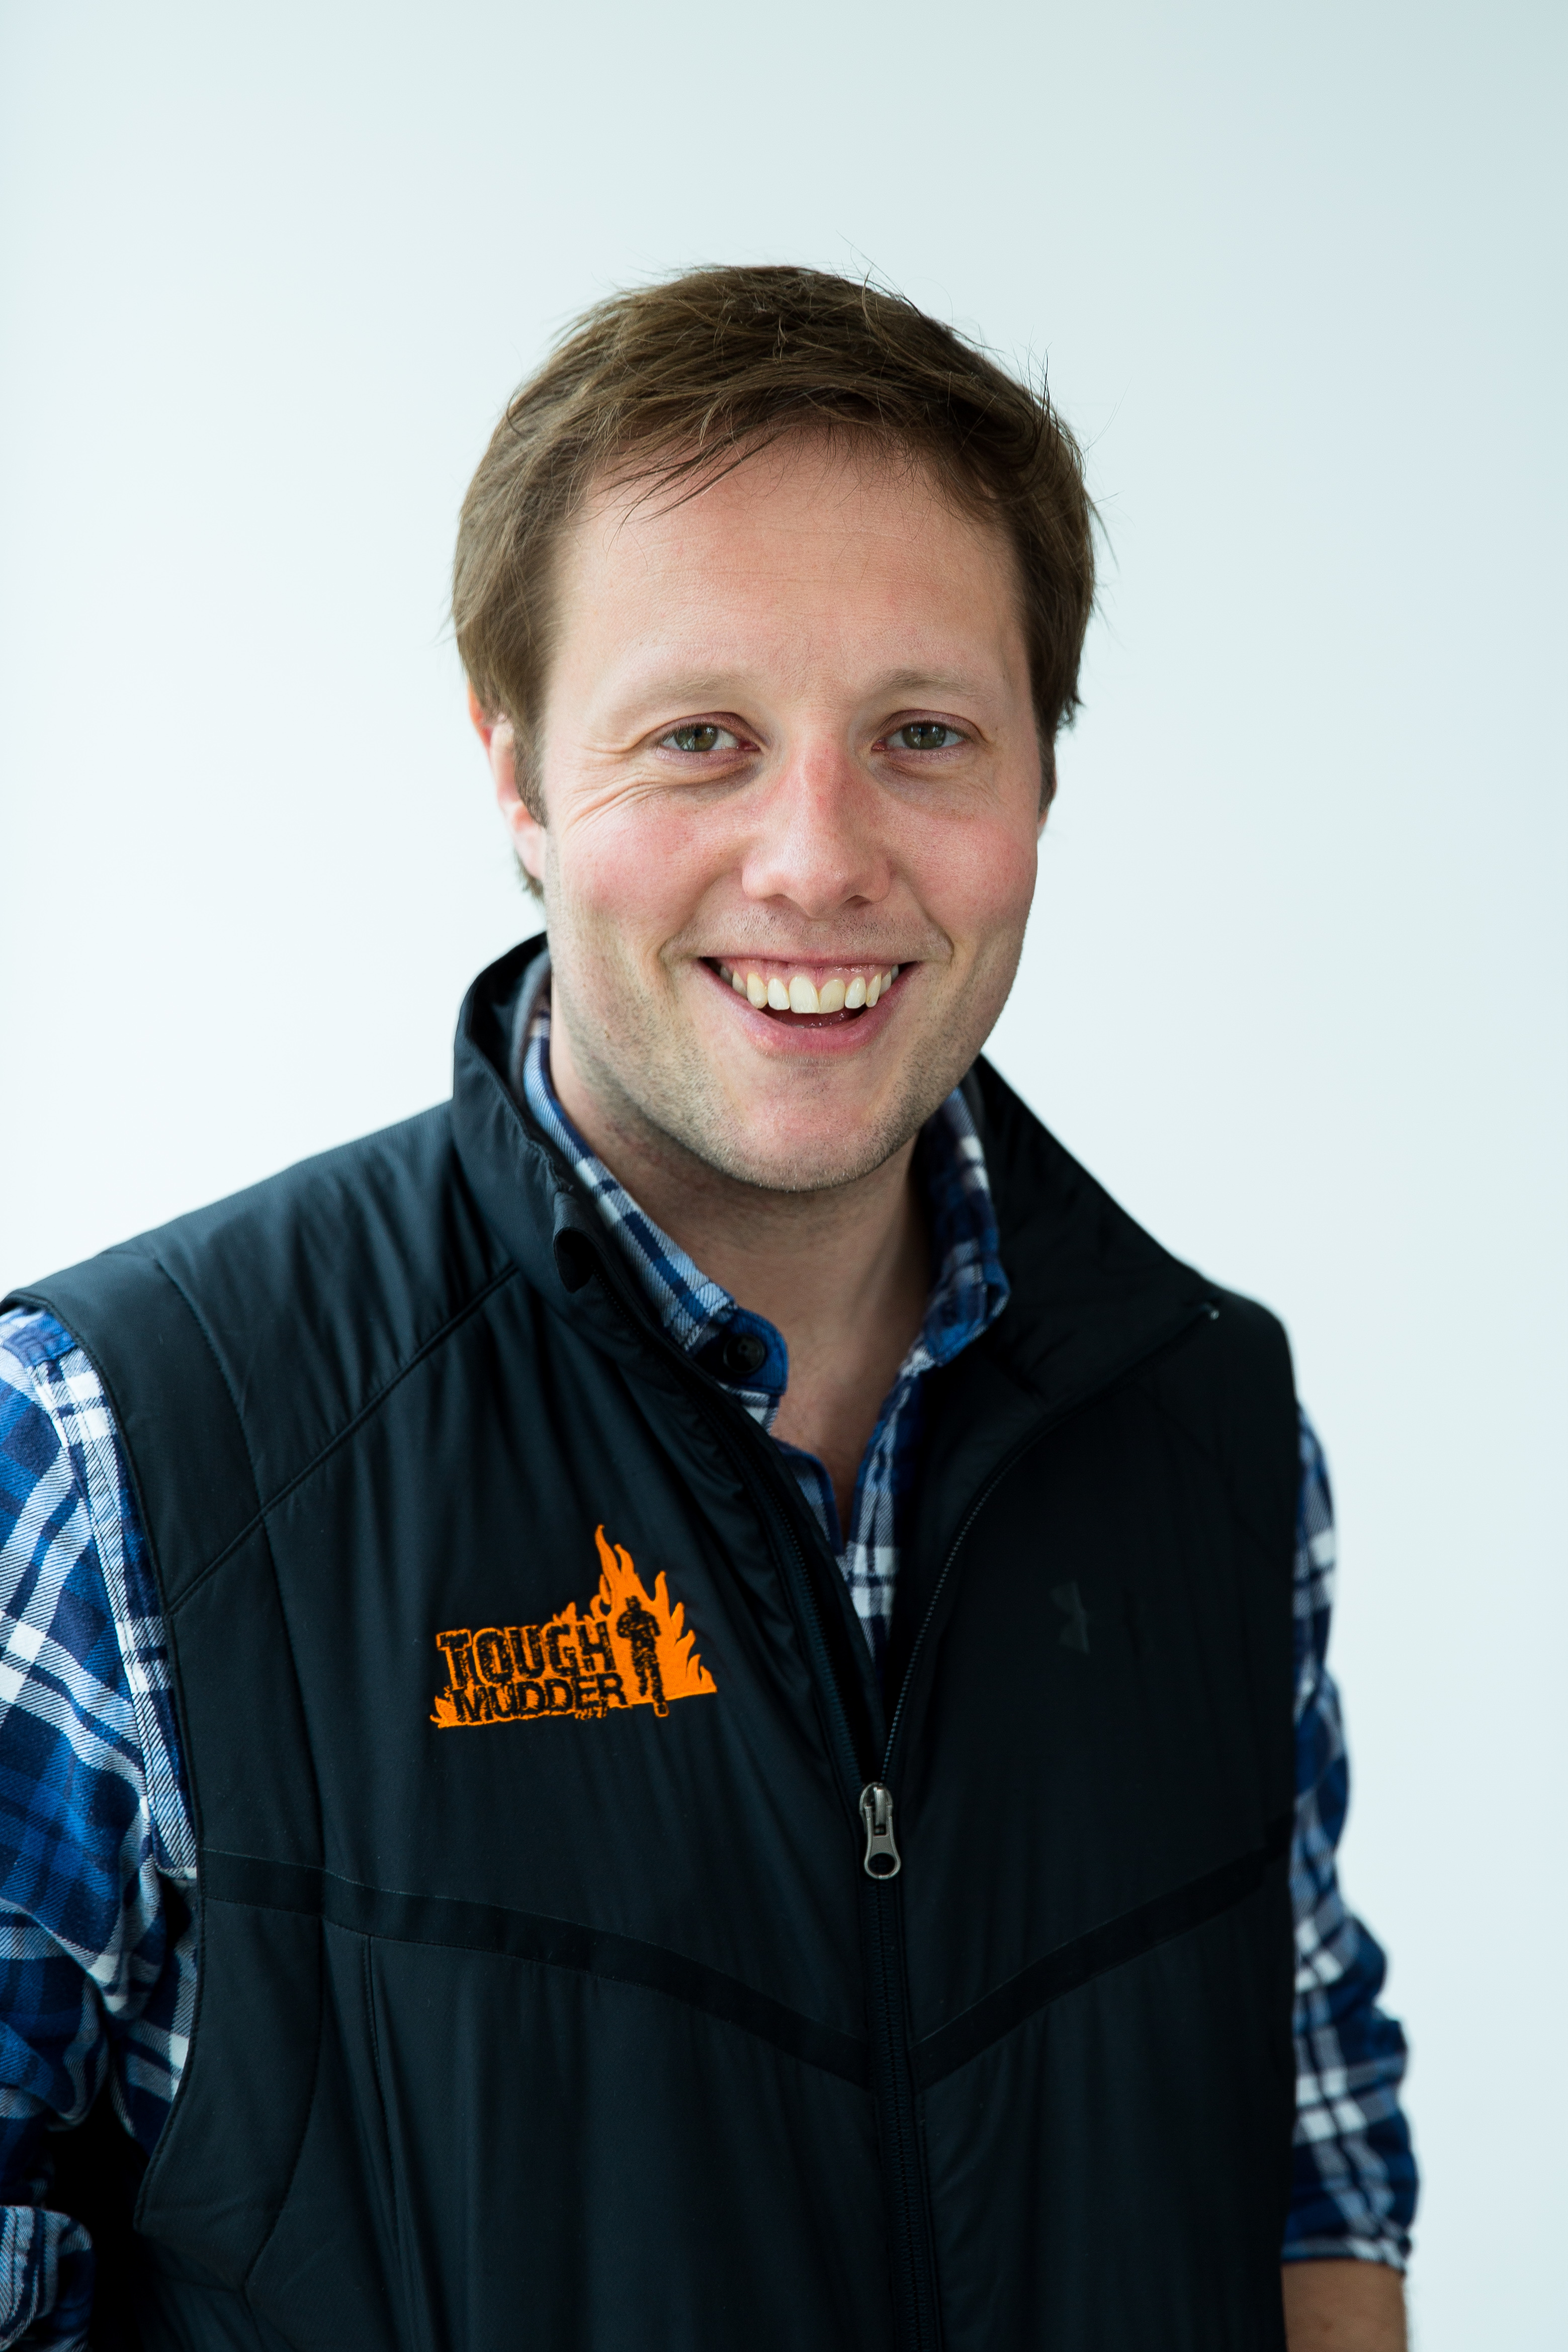 Will Dean, CEO and founder of Tough Mudder